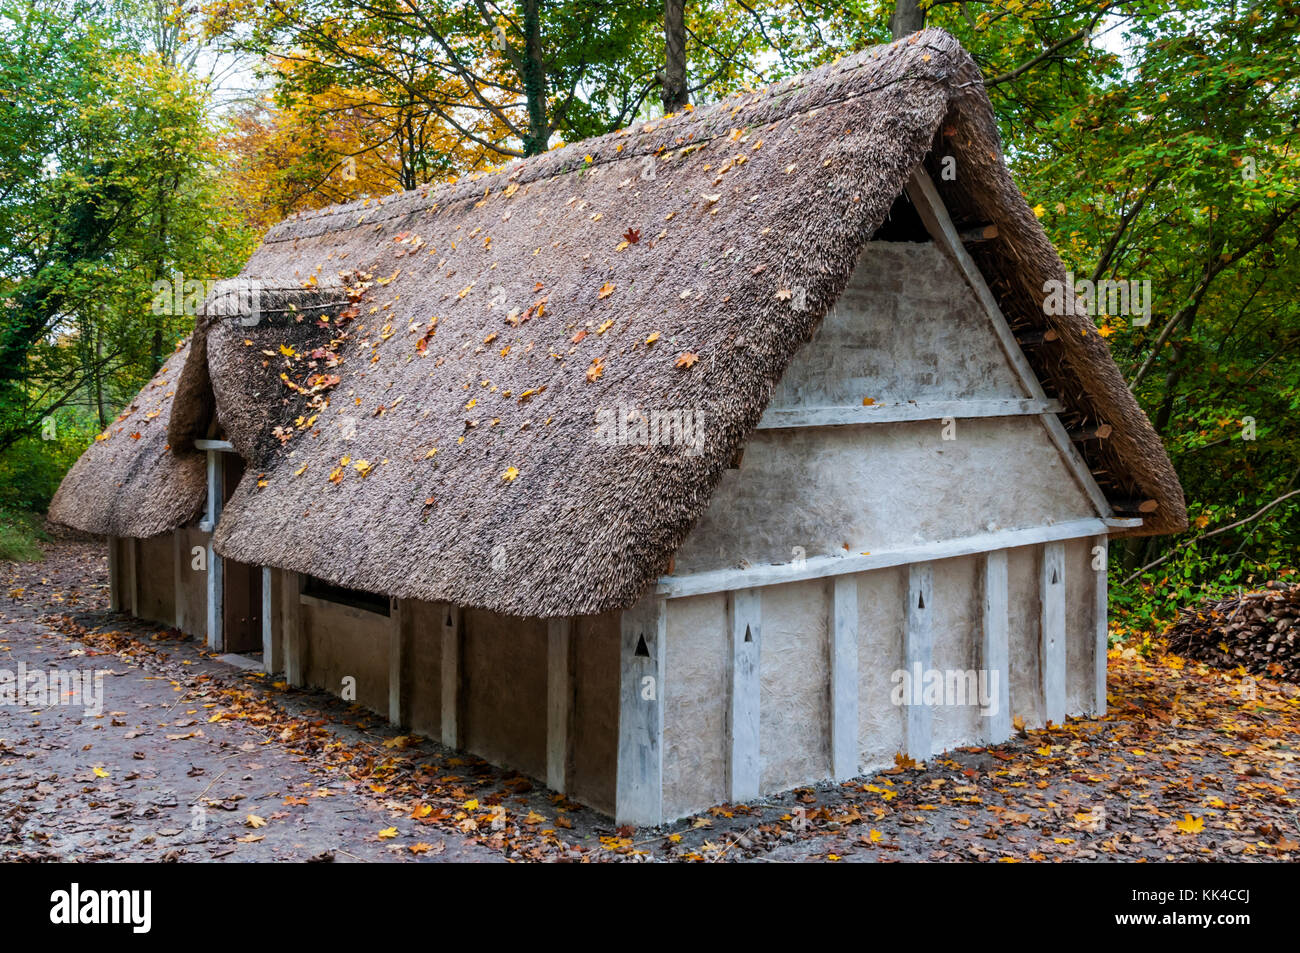 Reconstruction of an Anglo Saxon hall house at the Weald and Downland Open Air Museum, Singleton, West Sussex. - Stock Image